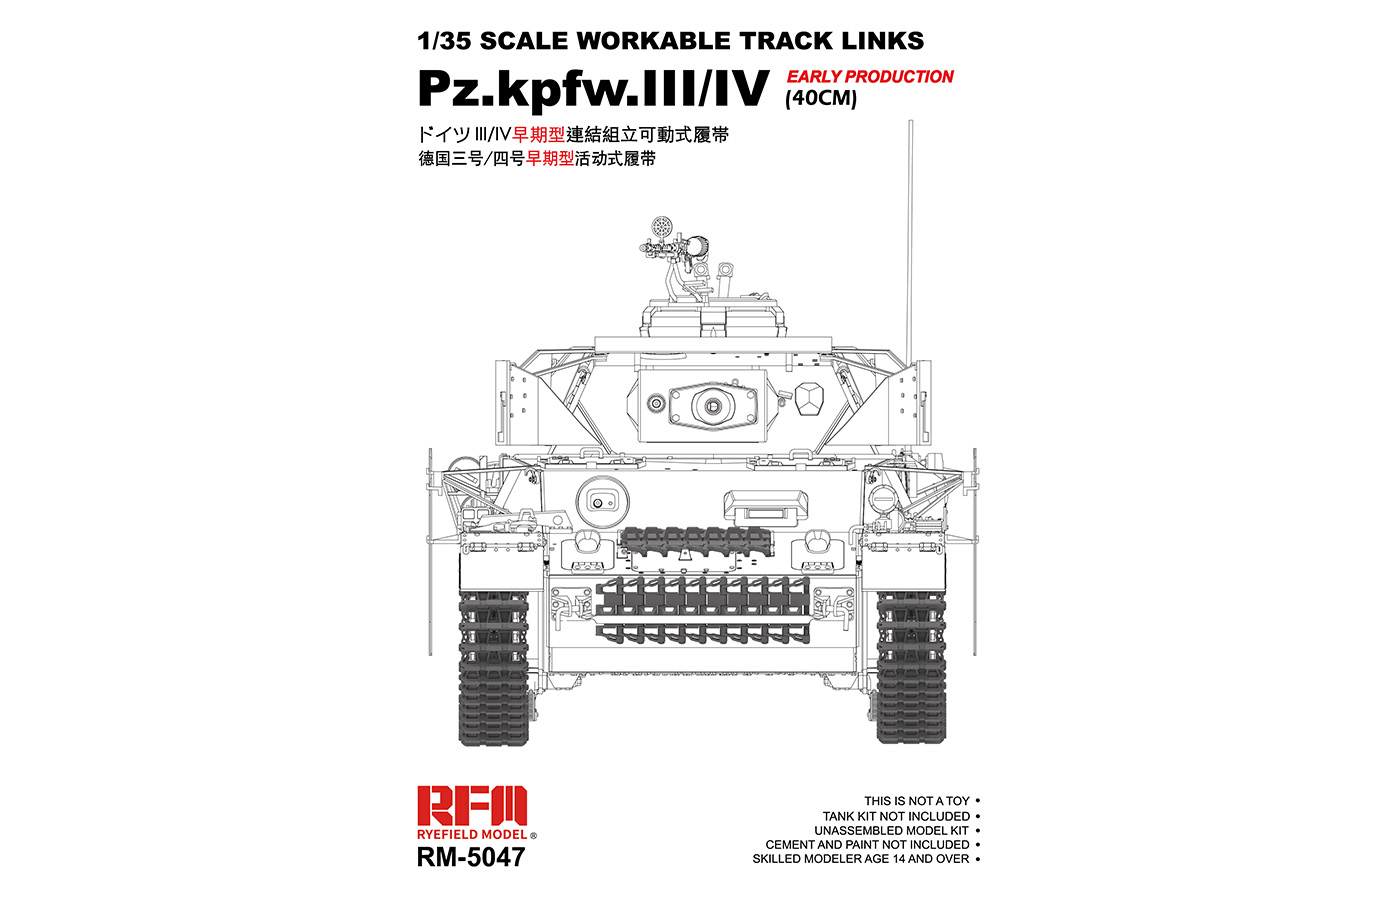 RM-5047 Pz.kpfw.III/IV EARLY PRODUCTION(40CM)